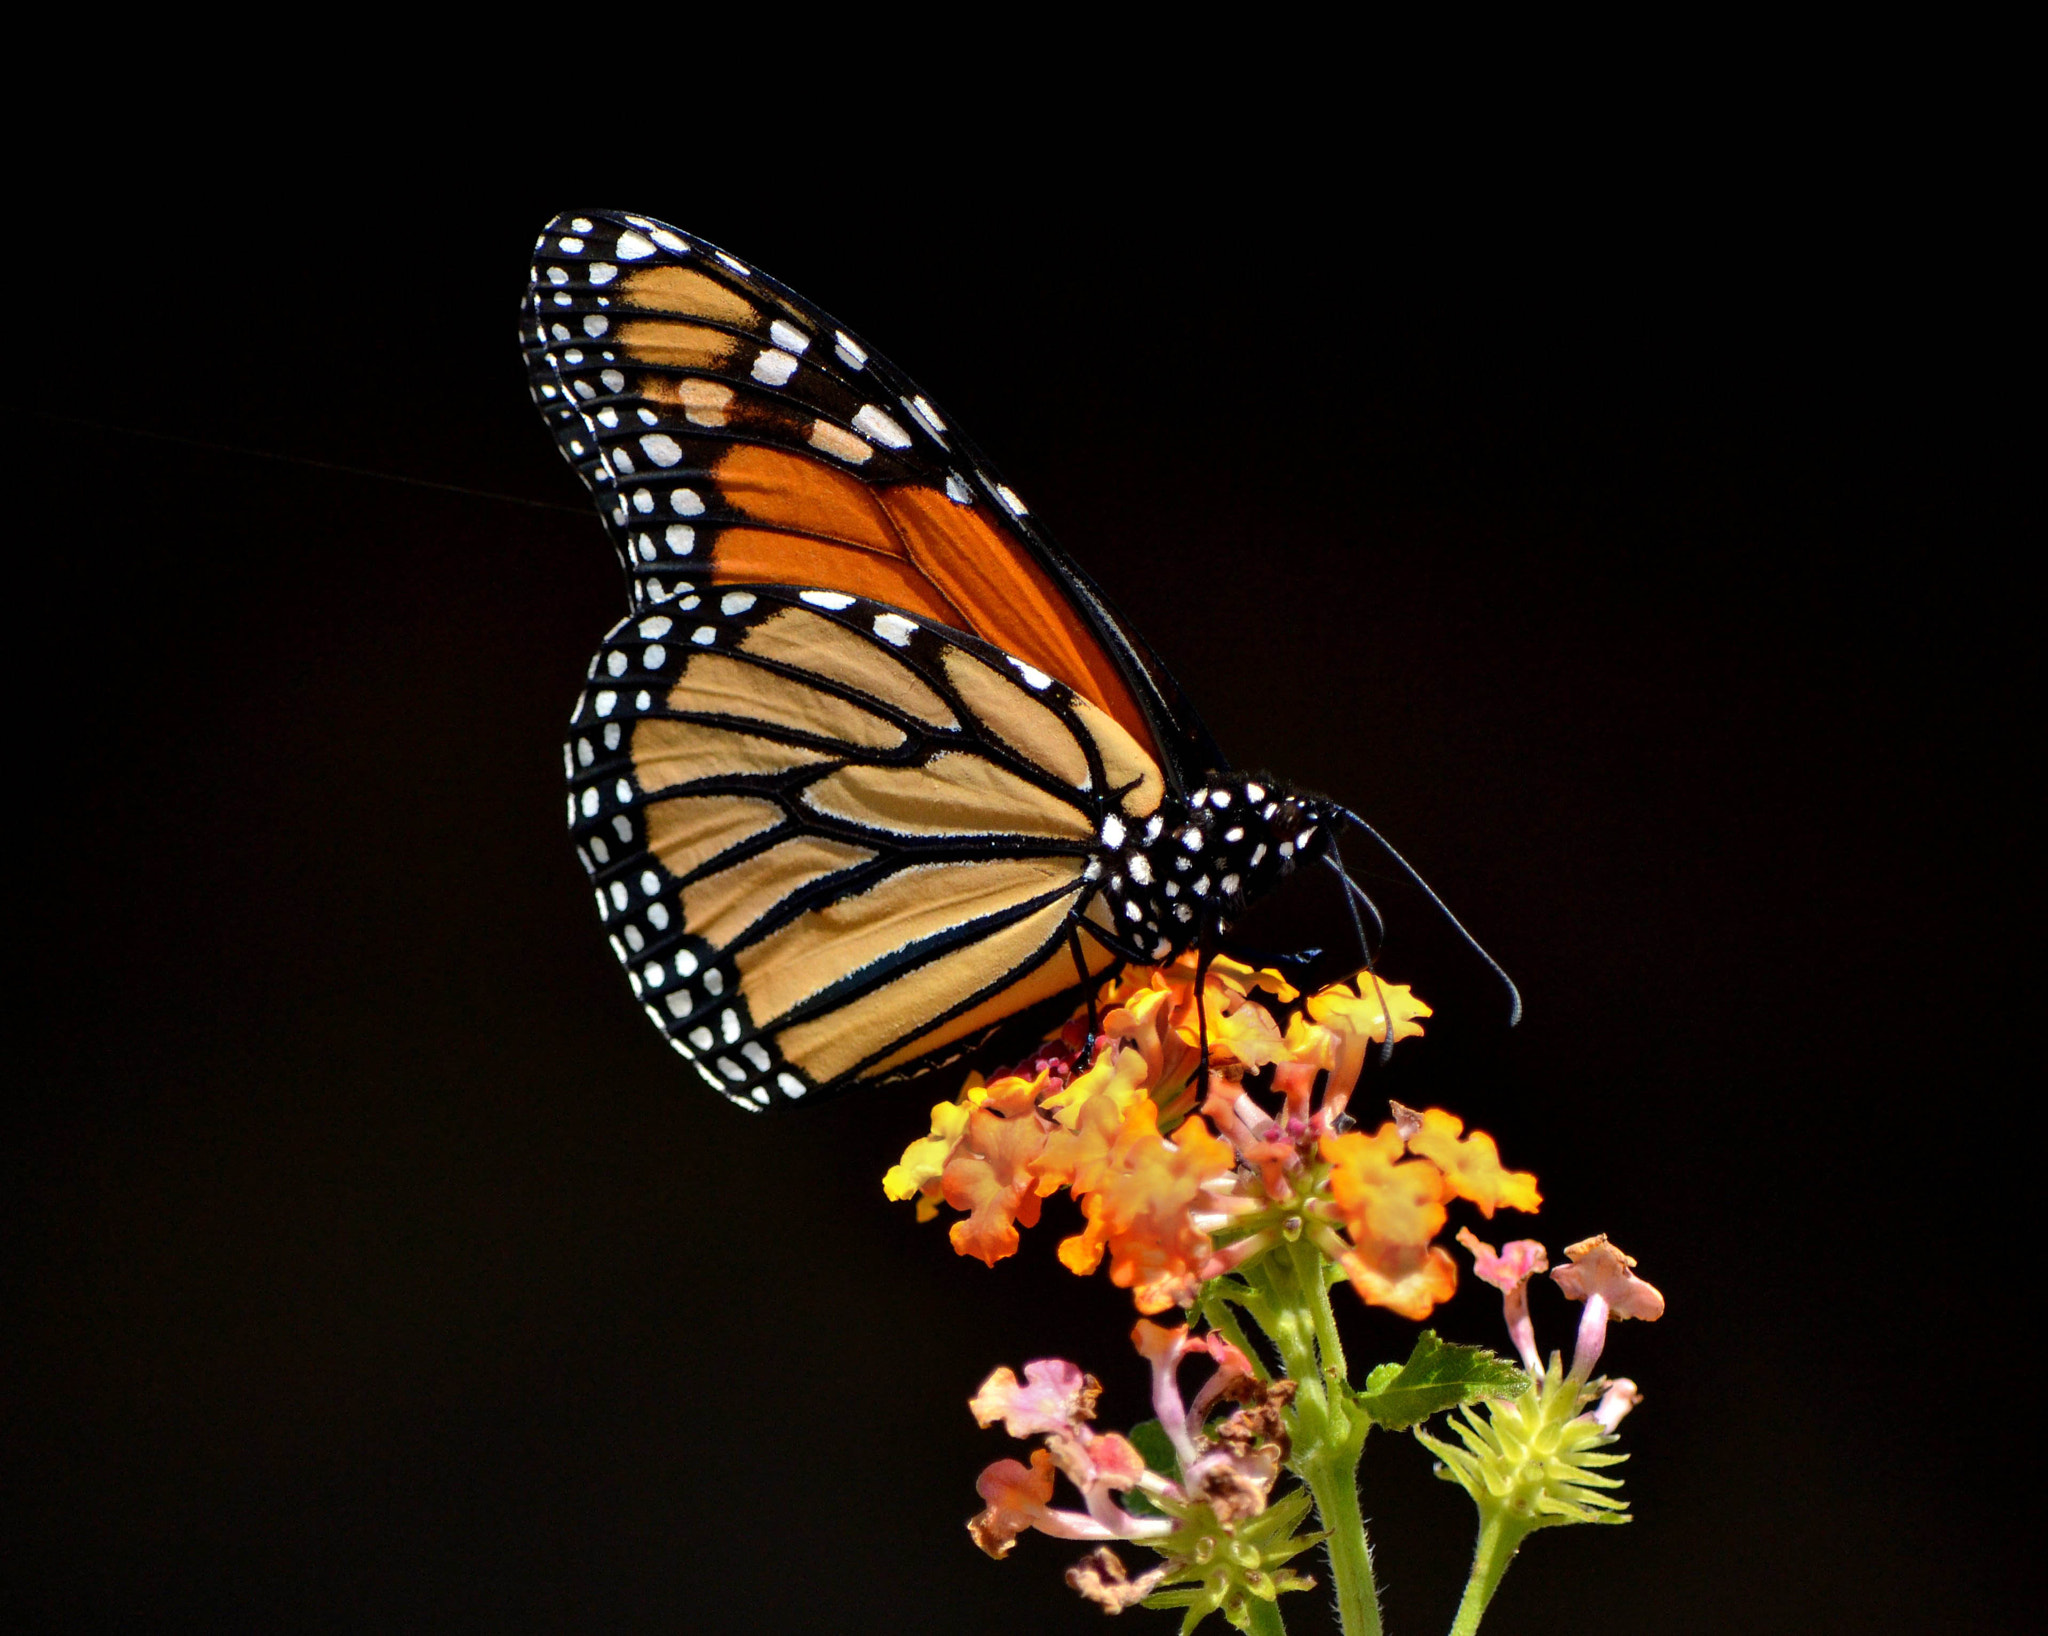 Photograph The Monarch by Susan Fisher on 500px